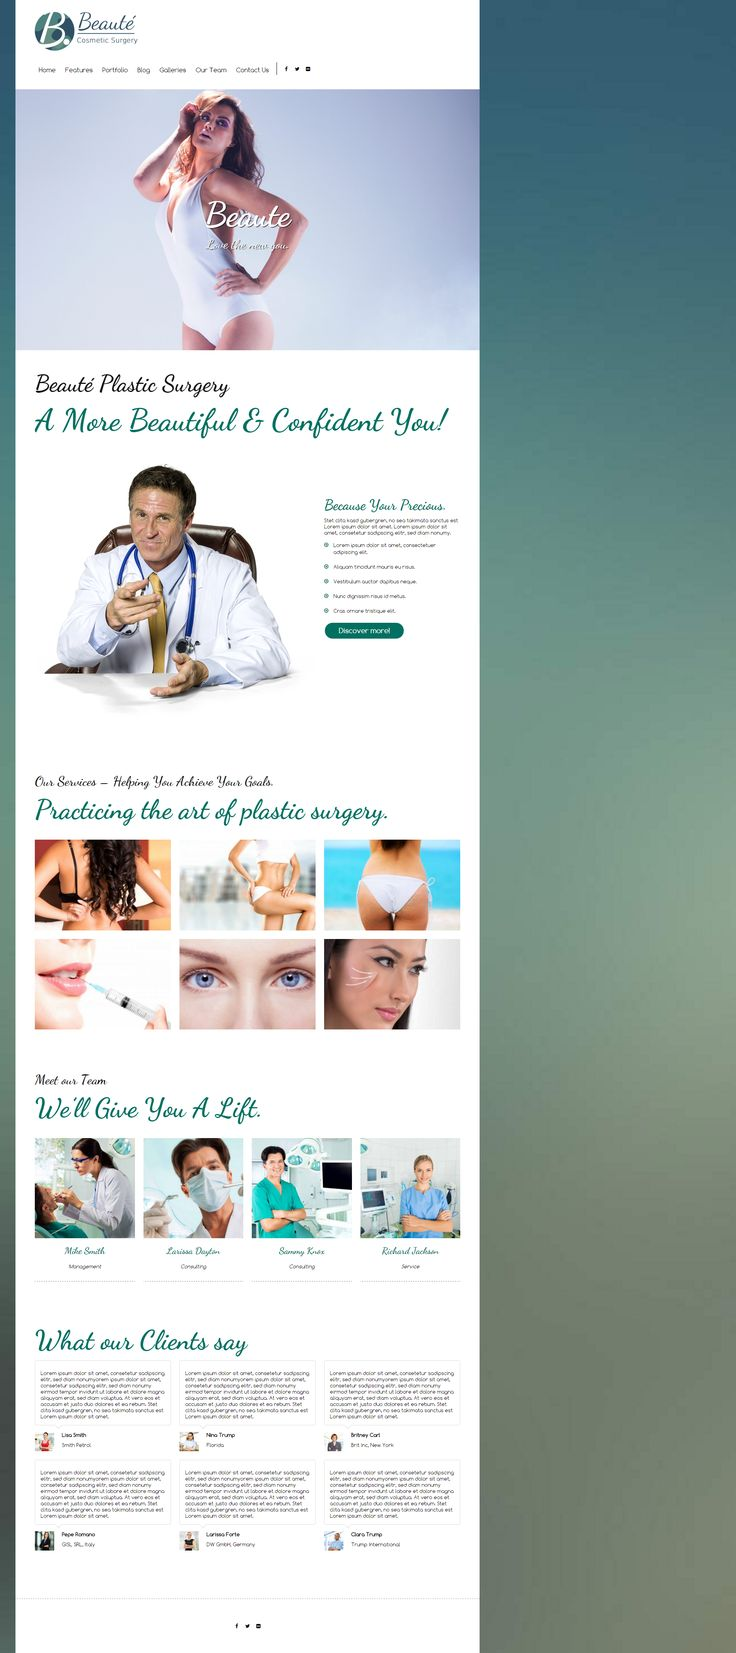 Beauté - is a modern, responsive plastic surgeon WordPress Theme. It's fully customizable and 100% responsive, SEO ready & easy to use. More Information here: http://7theme.net/downloads/beaute-plastic-surgeon-wordpress-theme/ #WordPress #Webdesign #Theme #Plastic #surgeon #esthetic #aesthetic #medical #doctor #cosmetic #surgery